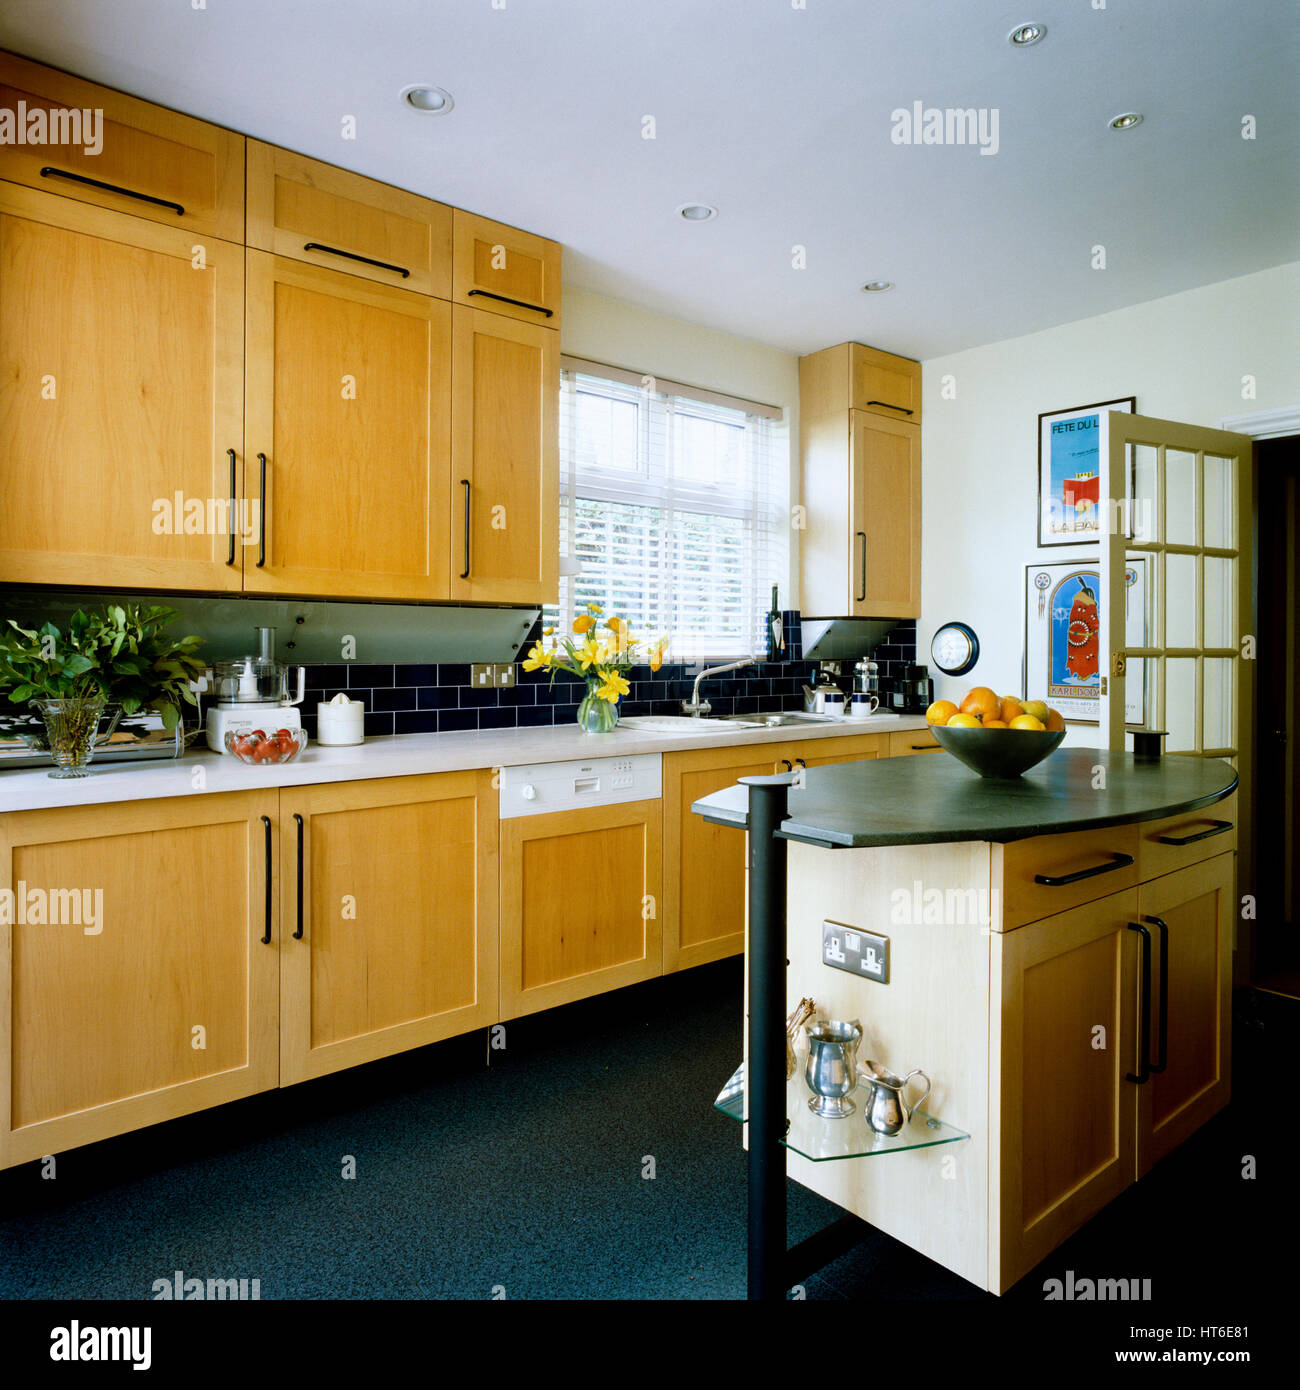 fitted kitchens stock photos fitted kitchens stock images alamy